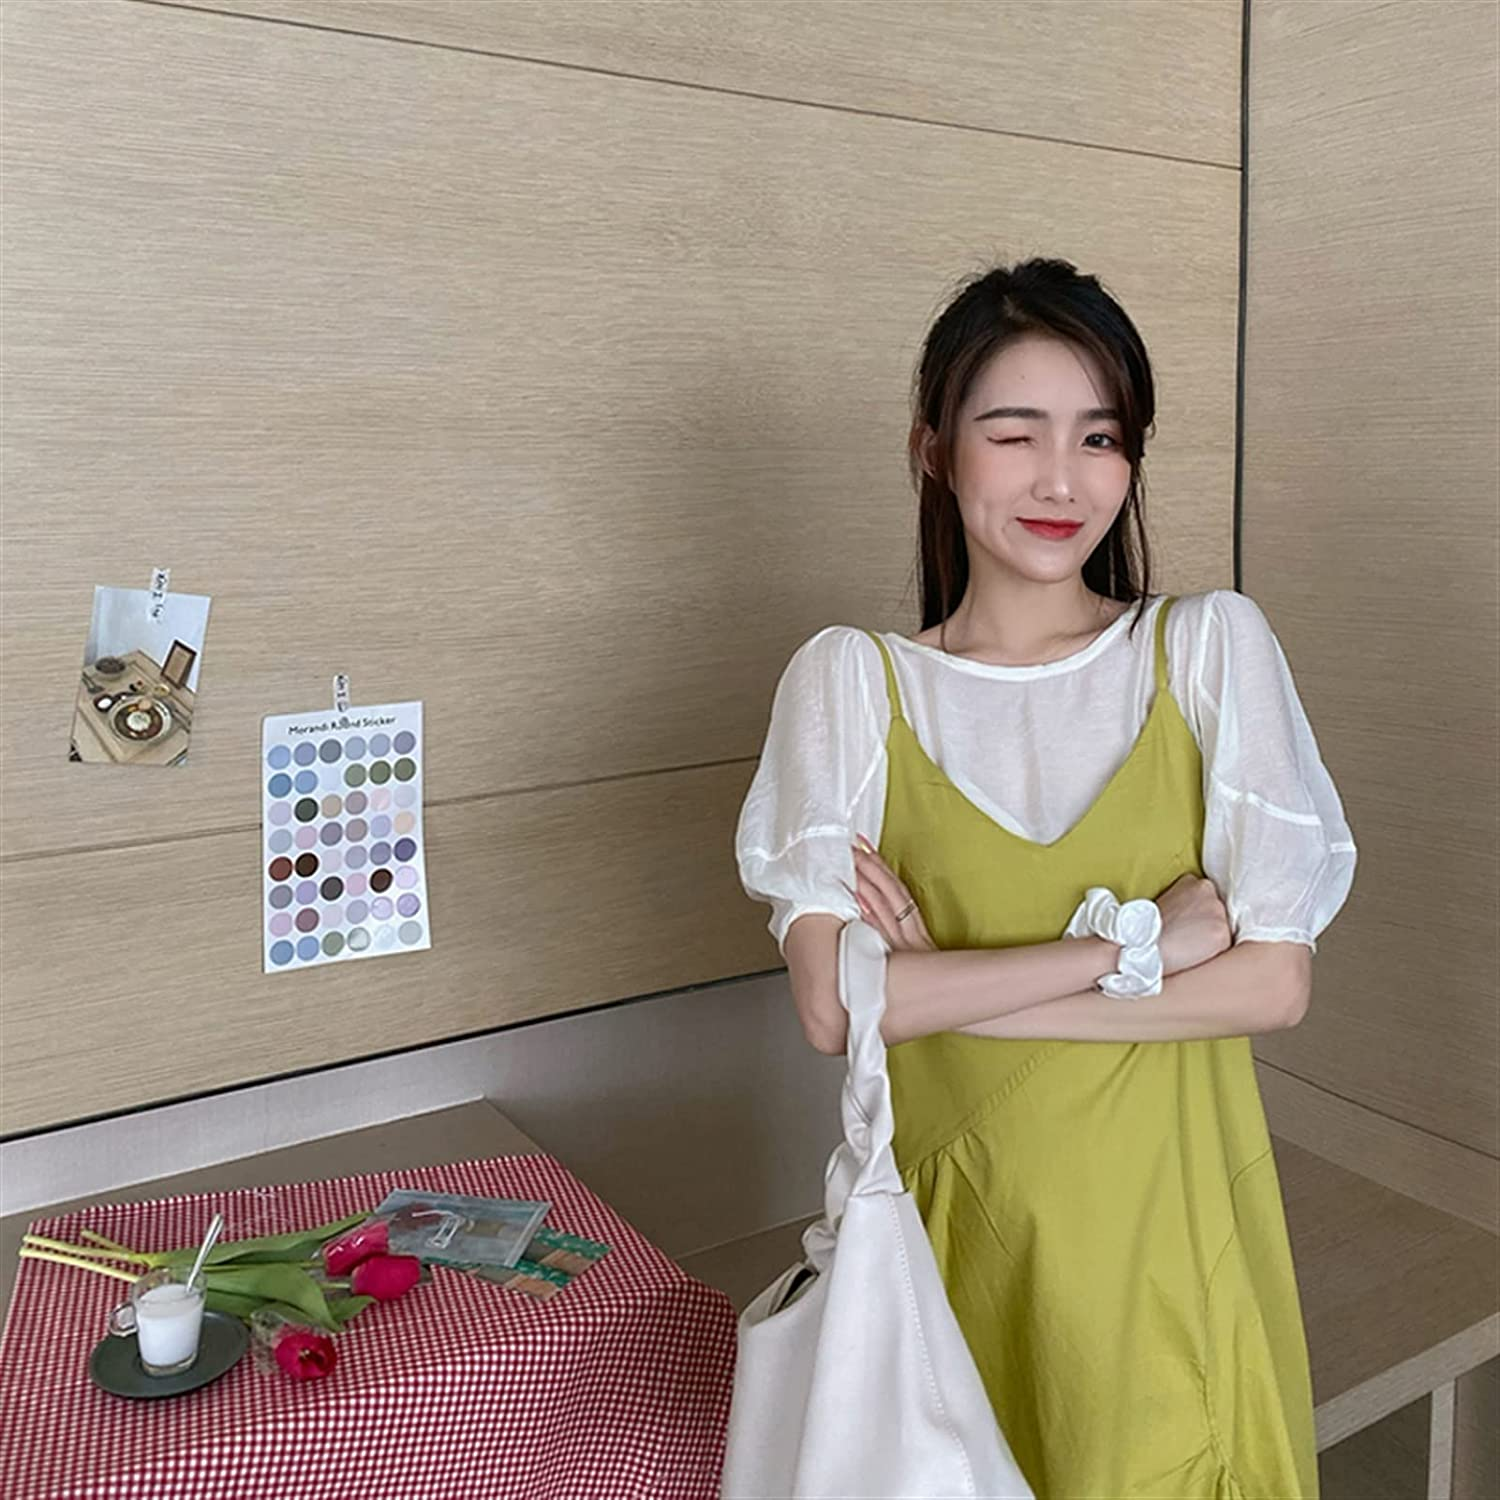 Zzx Bubble Sleeve Dress Temperament Female Summer Slings Pure Sweet Fashion Skirt (Color : Lemon Yellow Skirt, Size : One Size)